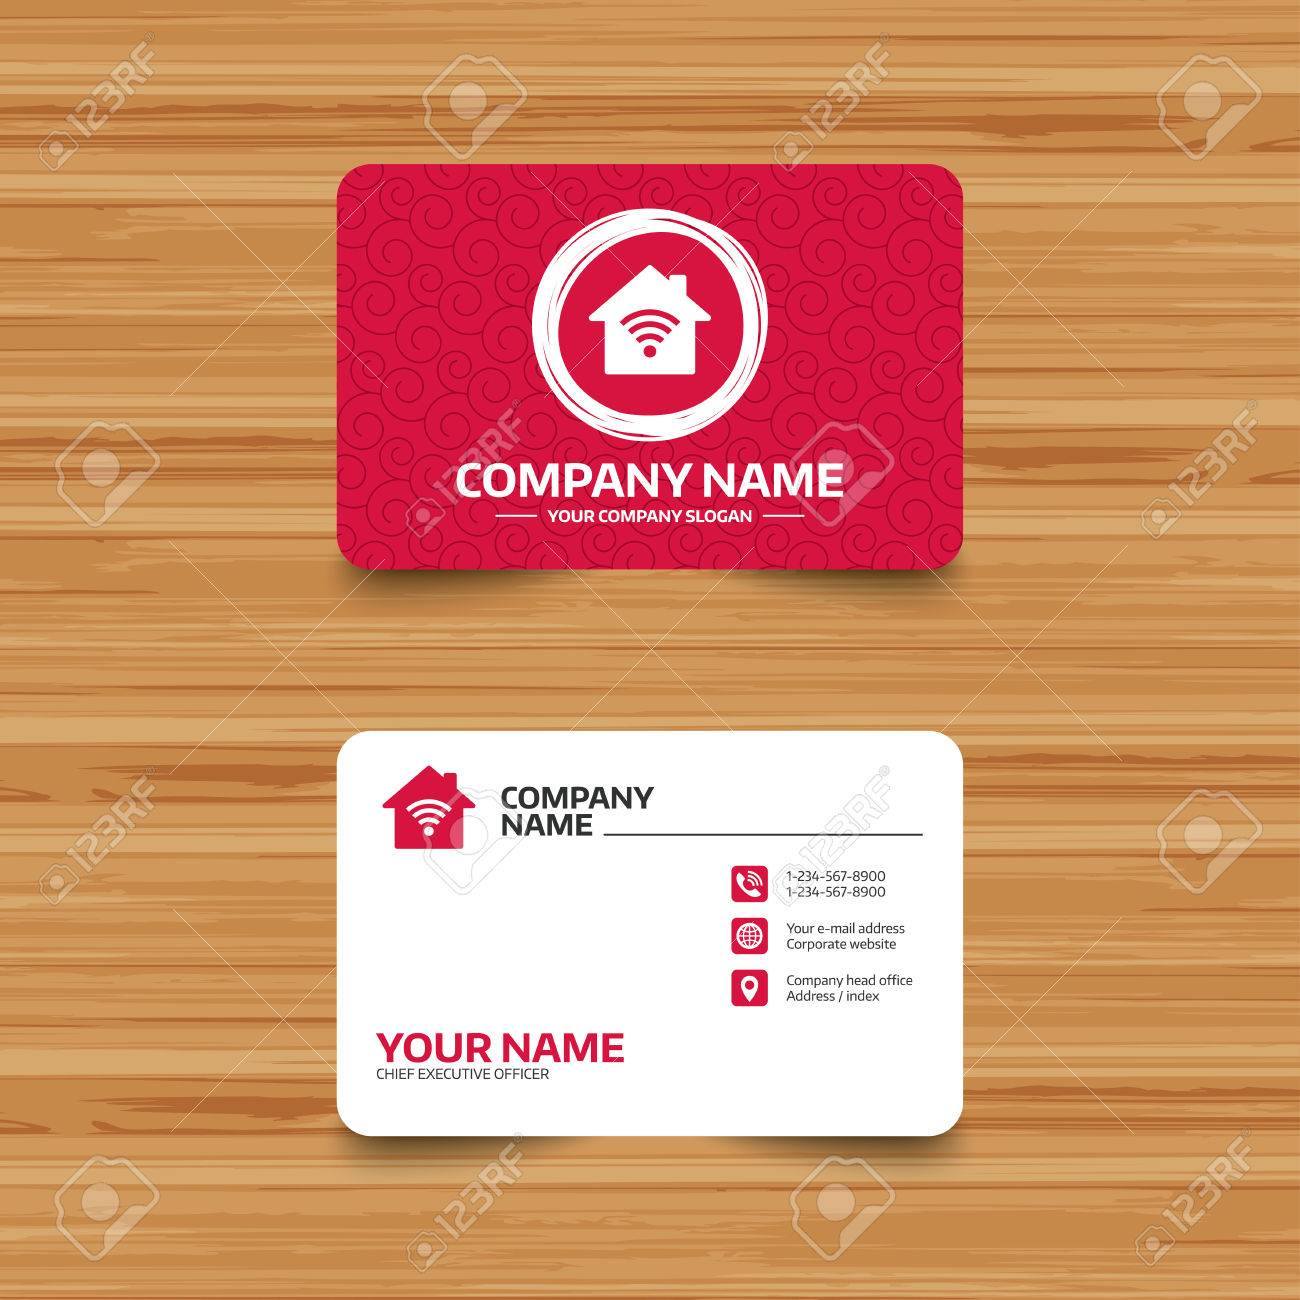 Networking Business Card Template Images - Free Business Cards